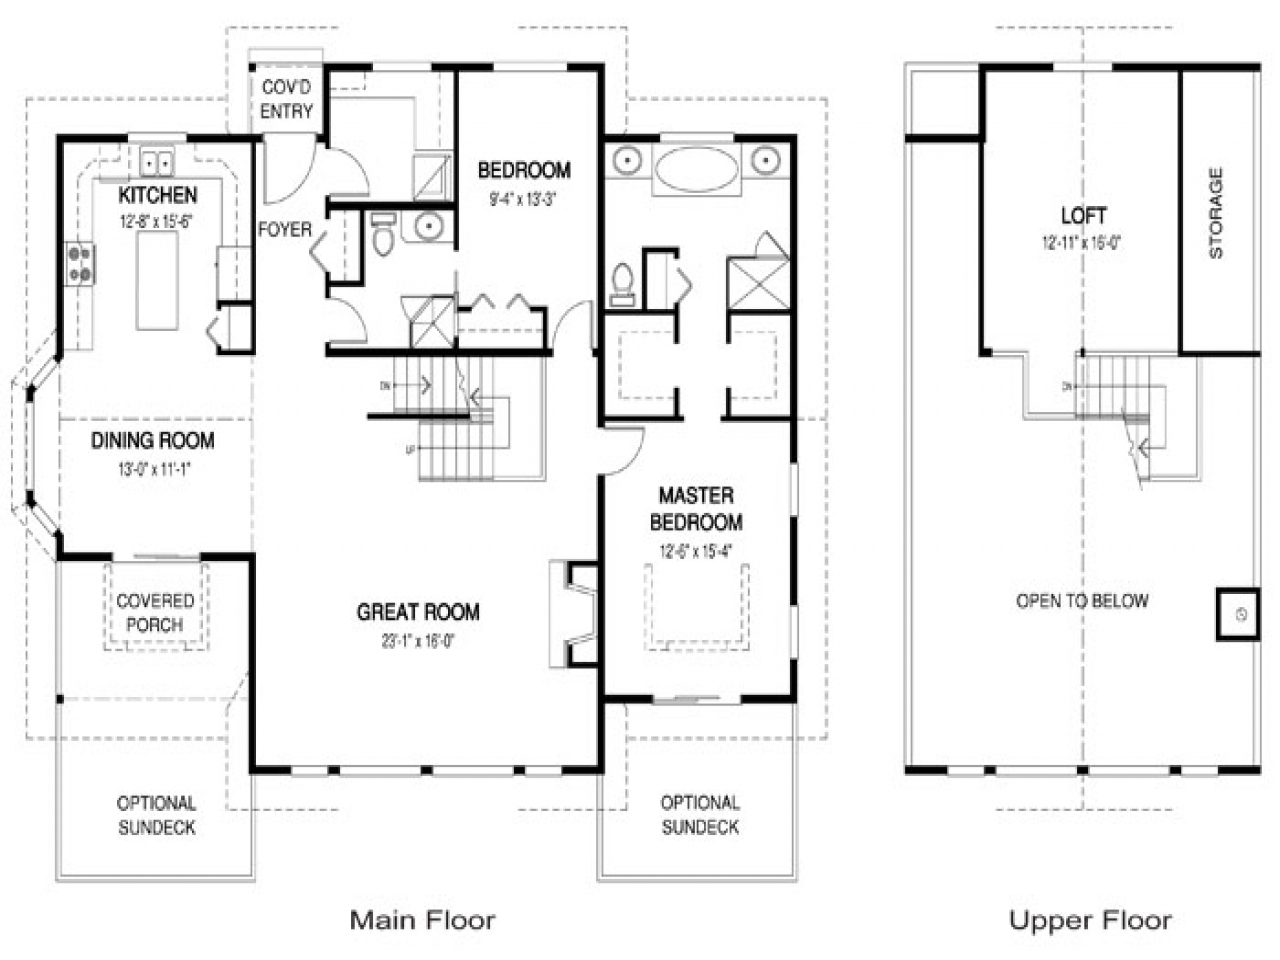 2 Bedroom Open Concept Floor Plans Open Concept Kitchen And Family Room Open Concept House